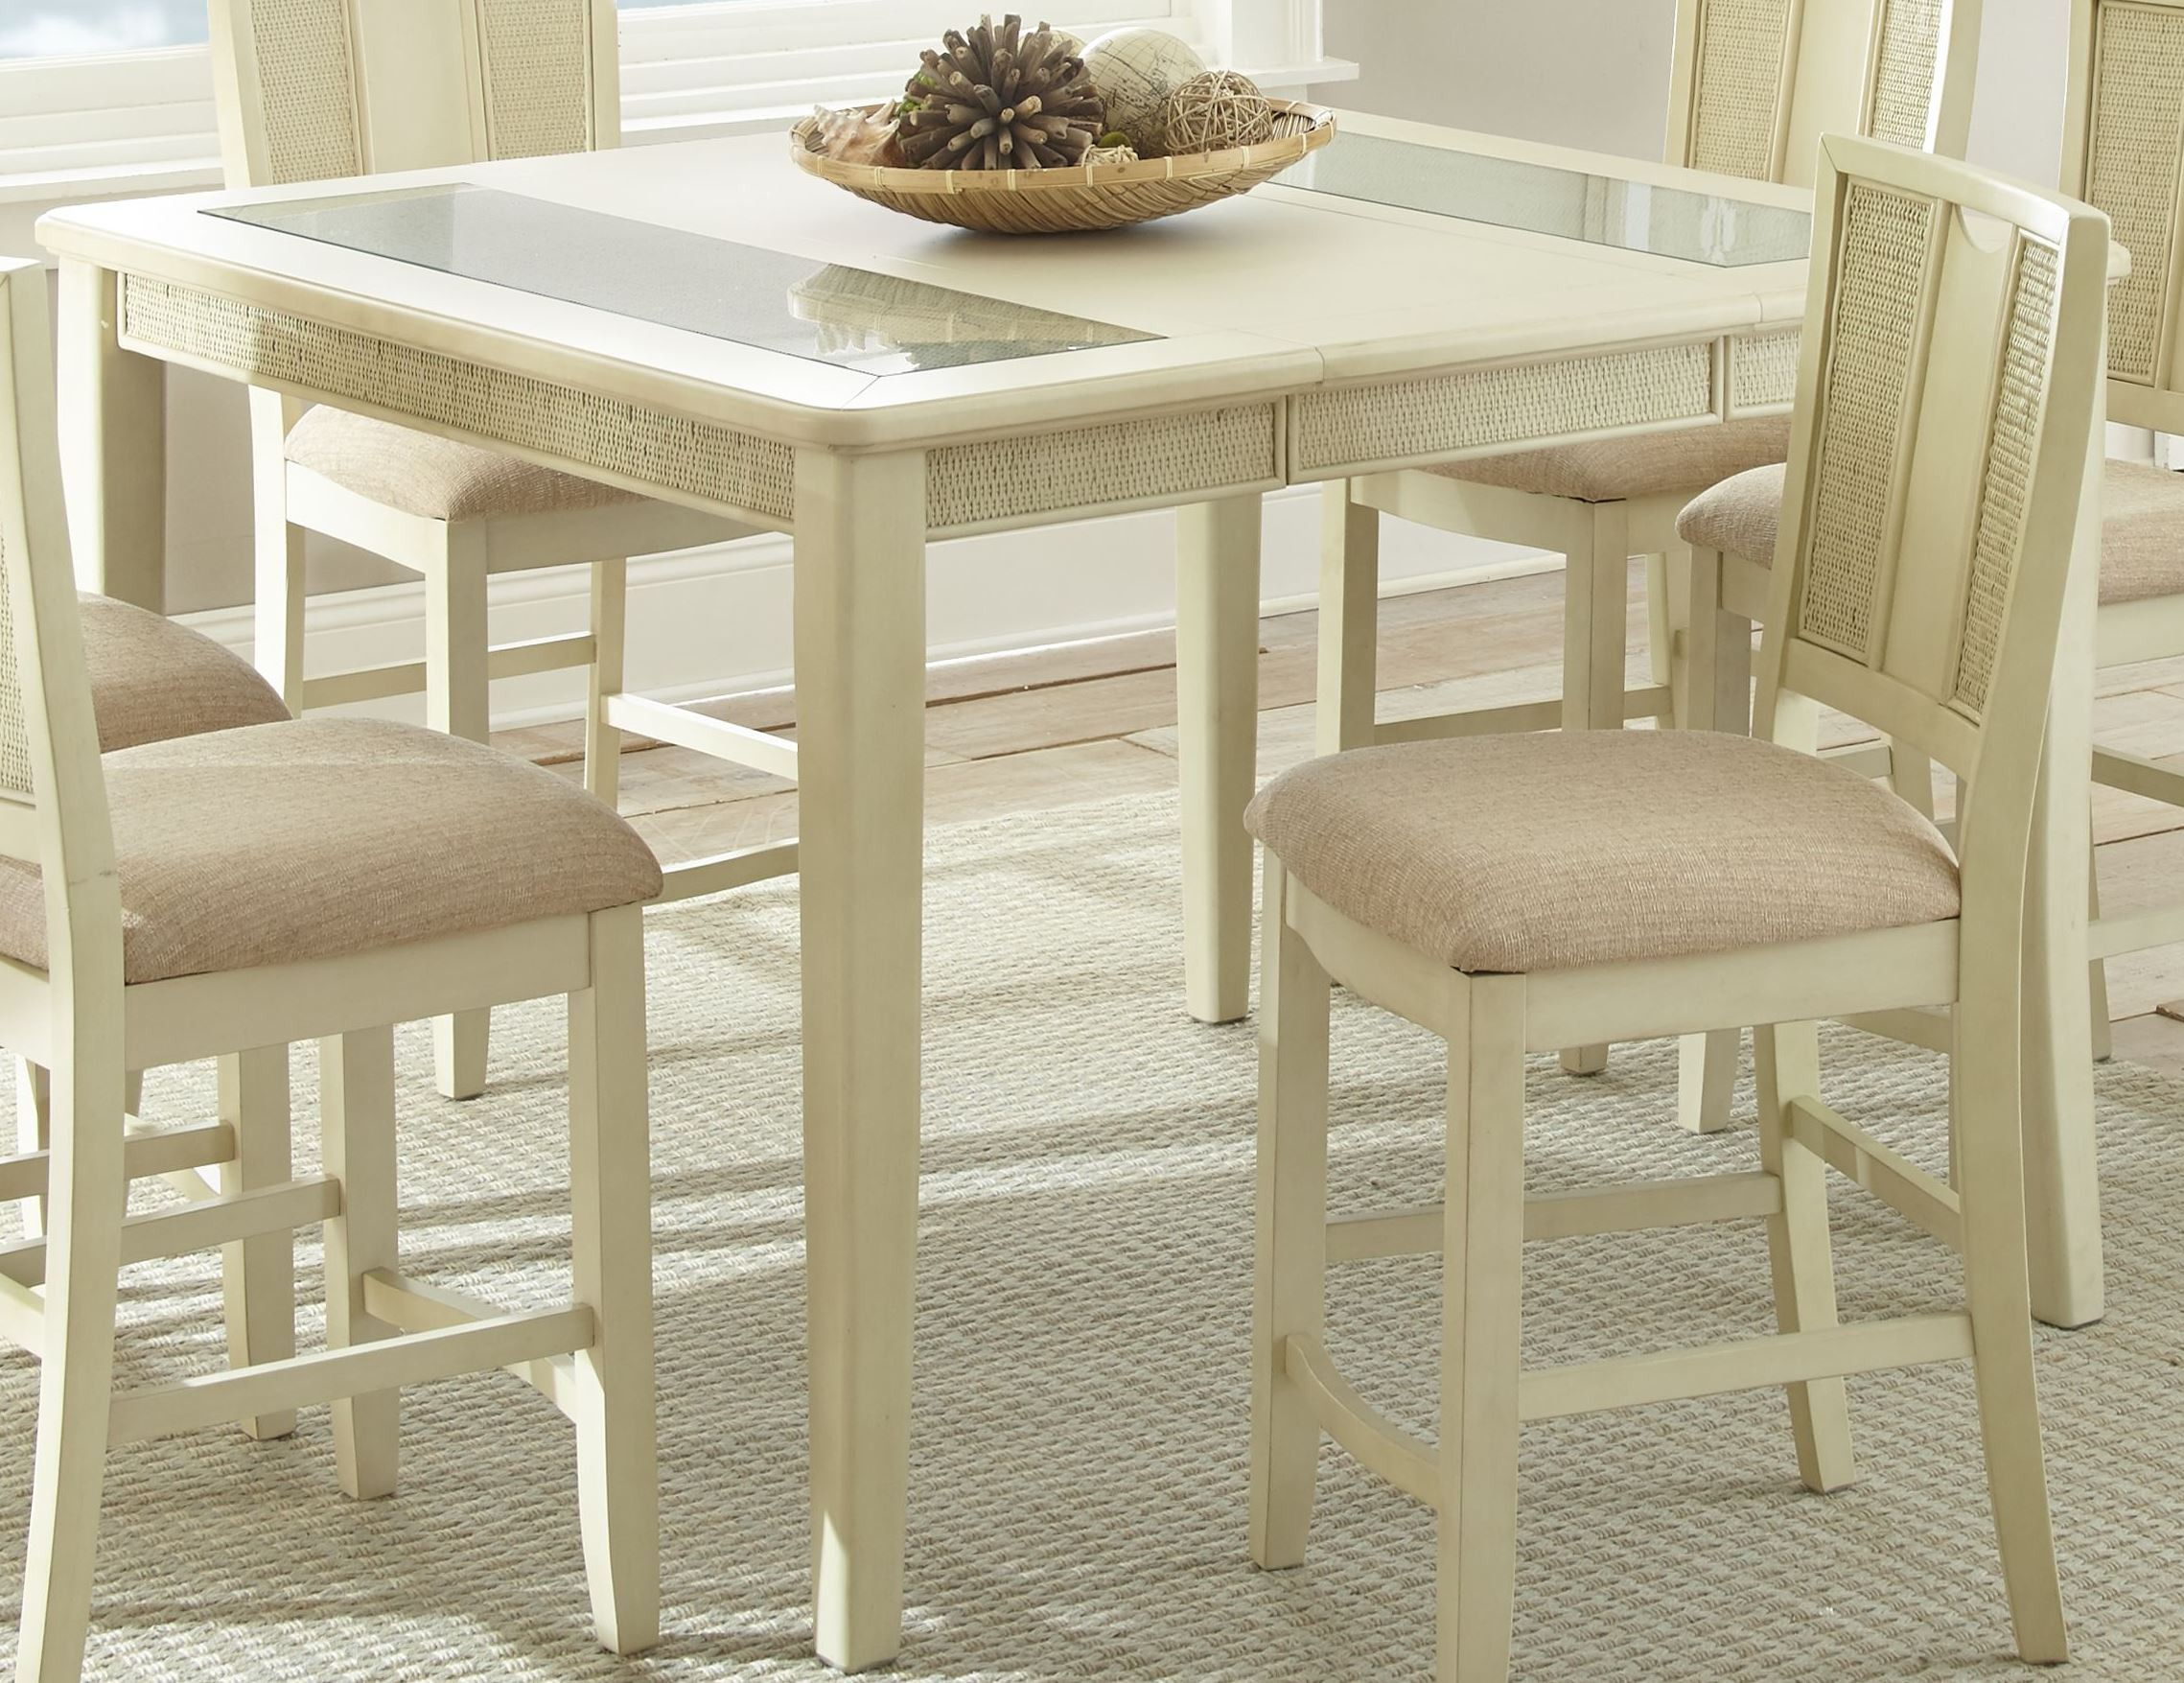 Melody White Extendable Rectangular Counter Height Dining Within Current Counter Height Extendable Dining Tables (View 5 of 15)